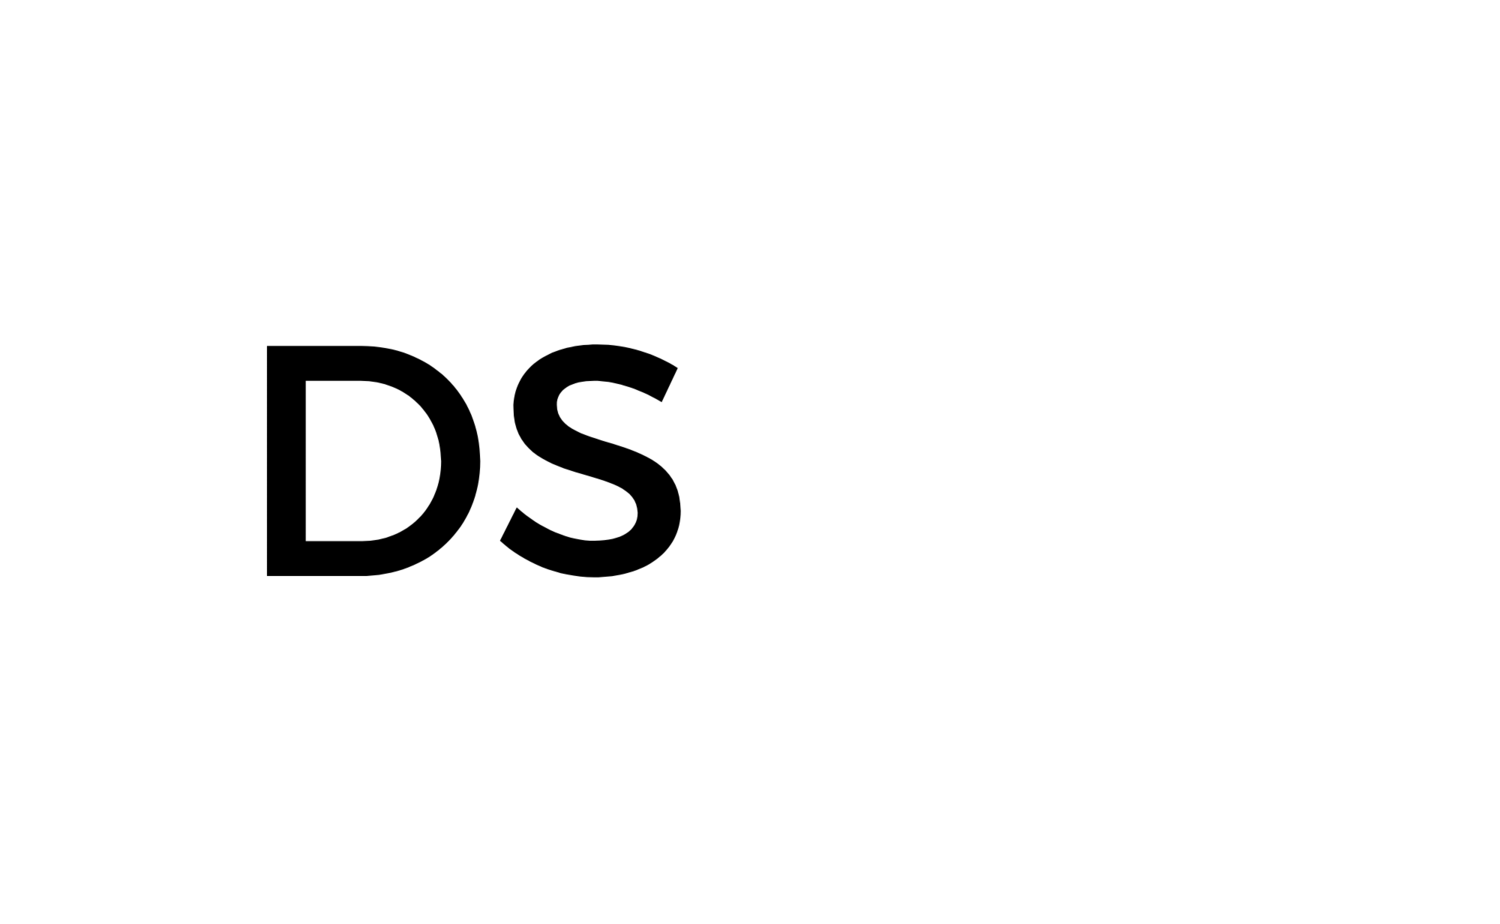 DS Analytics | Data Science Consultancy